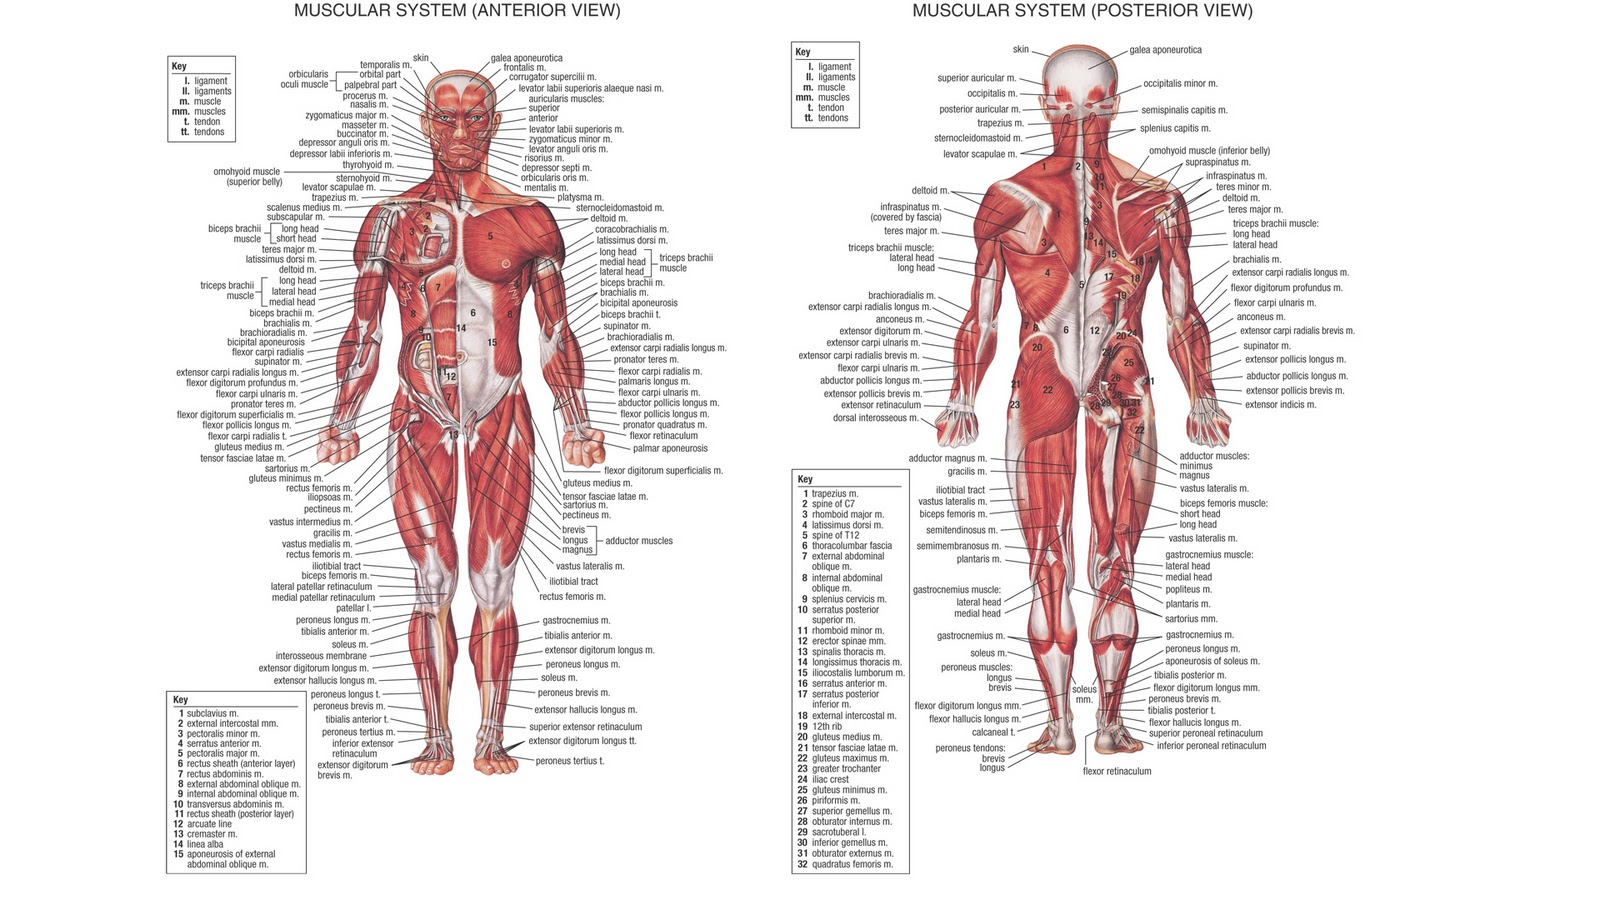 Anatomy Photos Artist Human Figure http://burke3132.blogspot.com/2011/02/muscle-desktop-wallpaper.html